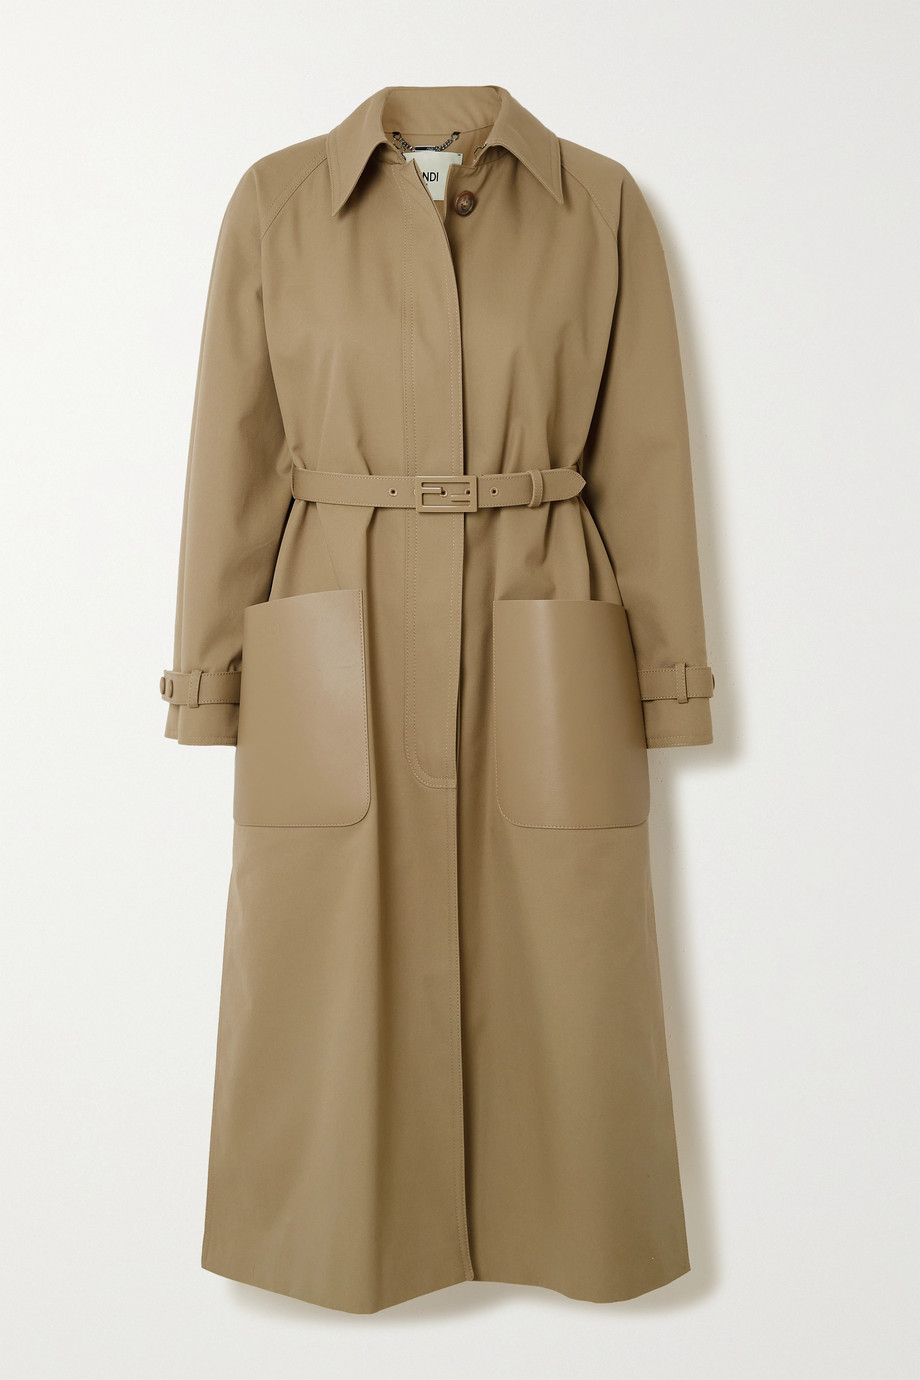 Fendi Belted leather-trimmed twill trench coat